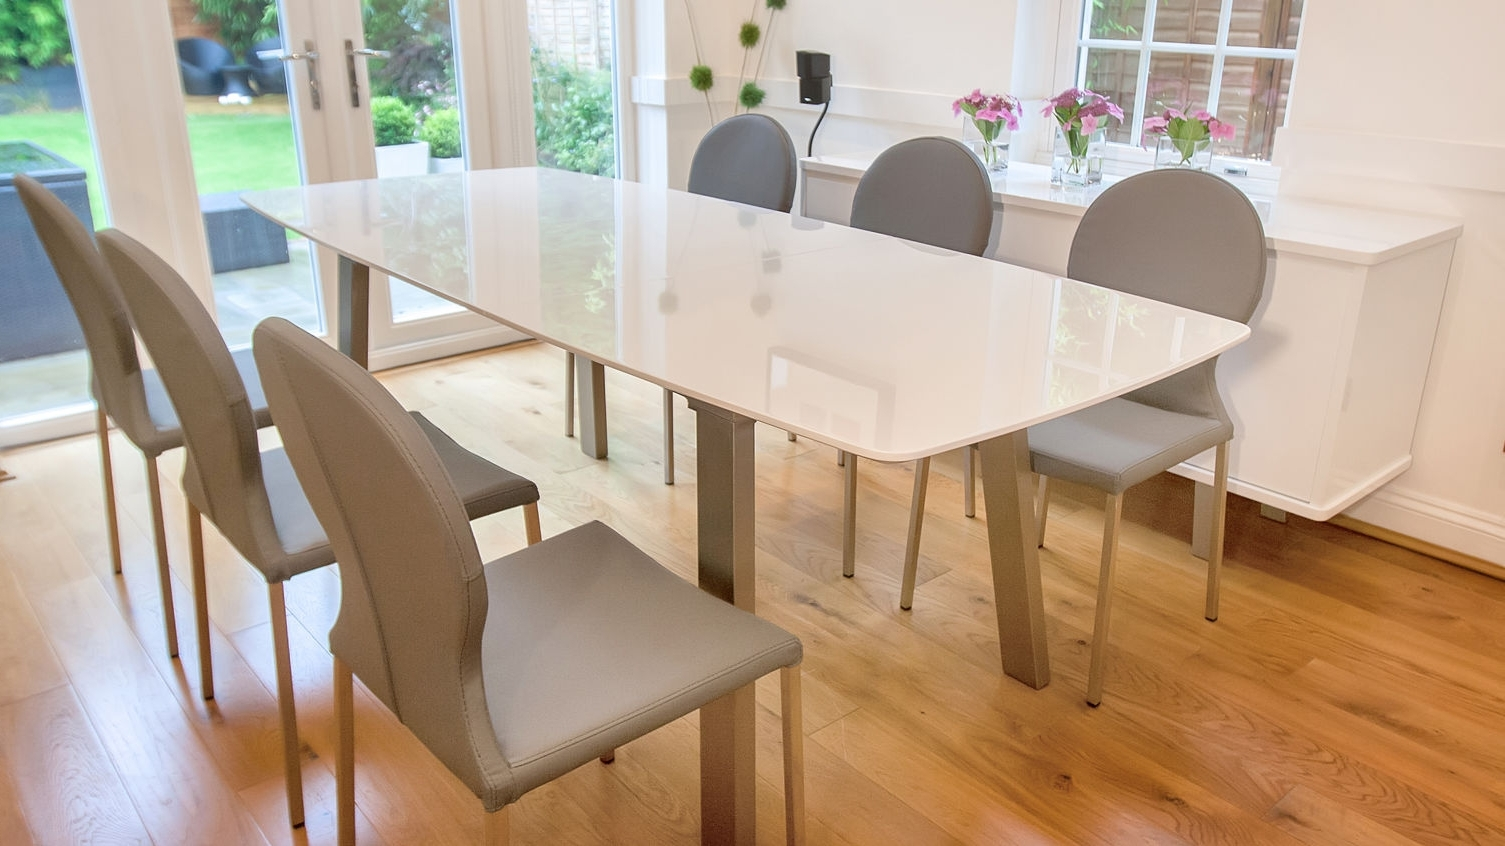 Extending Dining Tables And Chairs for Well-known Extending Dining Room Tables And Chairs Dining Room Chair Slipcovers